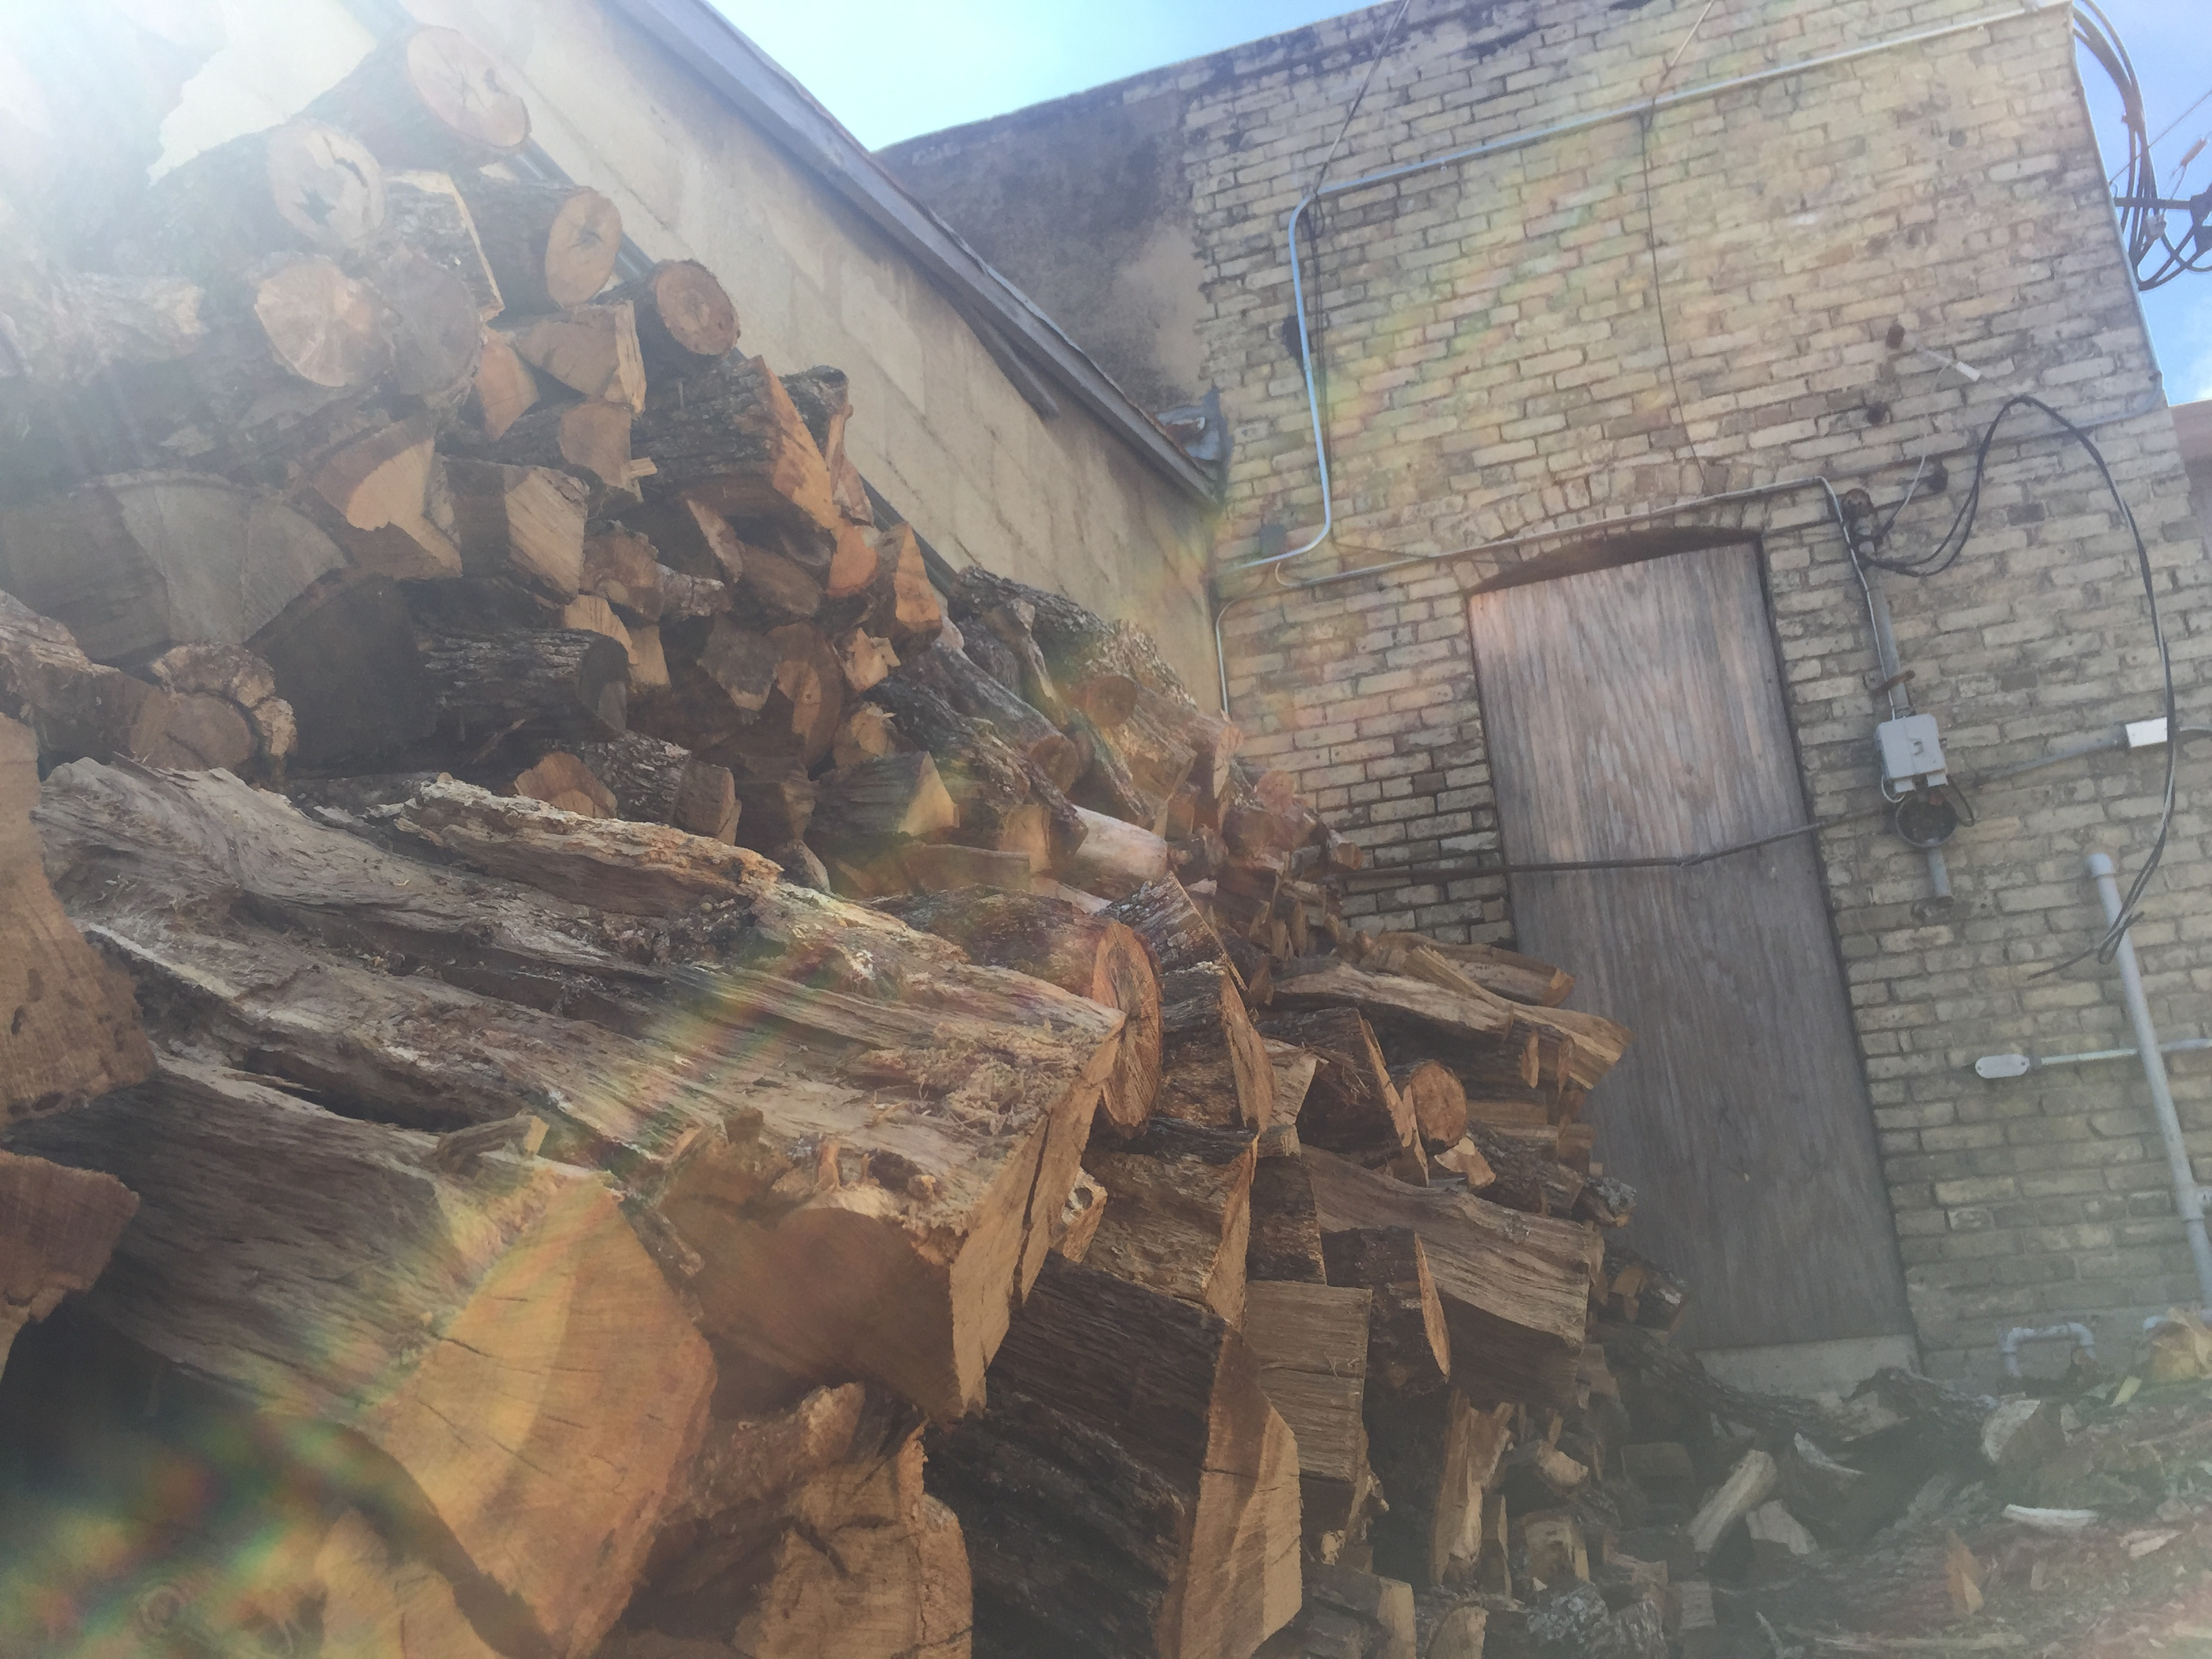 Wood pile by Louis Mueller BBQ. Photo by Stover Harger III